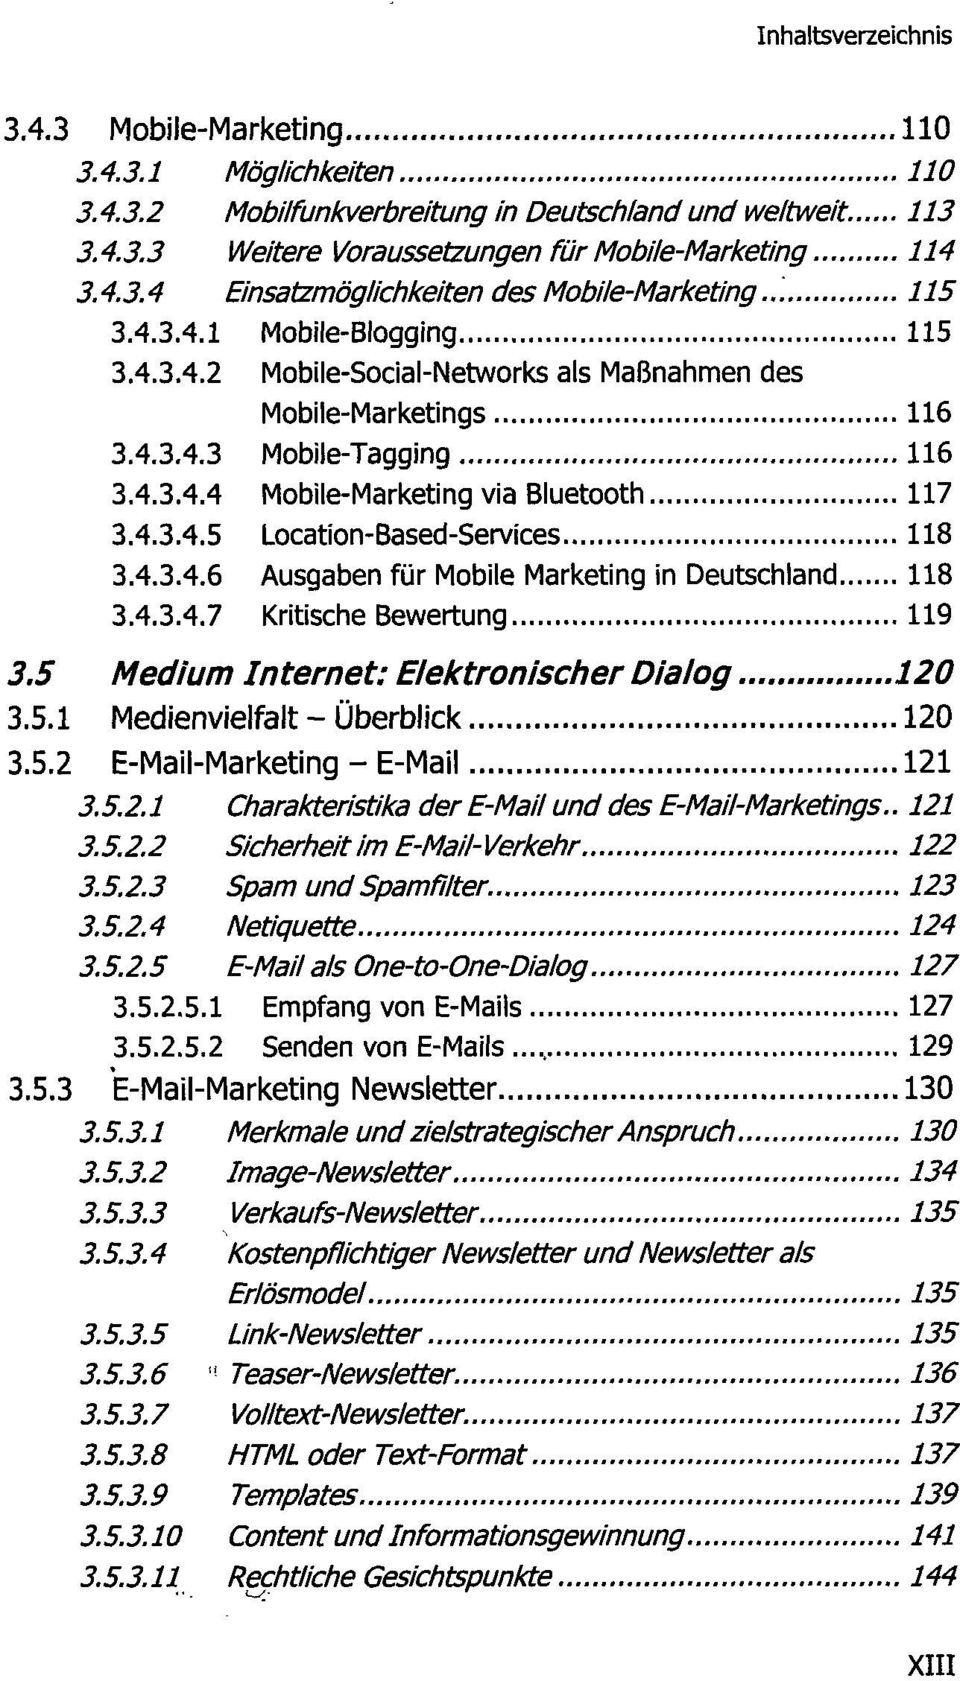 4.3.4.6 Ausgaben für Mobile Marketing in Deutschland 118 3.4.3.4.7 Kritische Bewertung 119 3.5 Medium Internet: Elektronischer Dialog 120 3.5.1 Medienvielfalt - Überblick 120 3.5.2 E-Mail-Marketing - E-Mail 121 3.